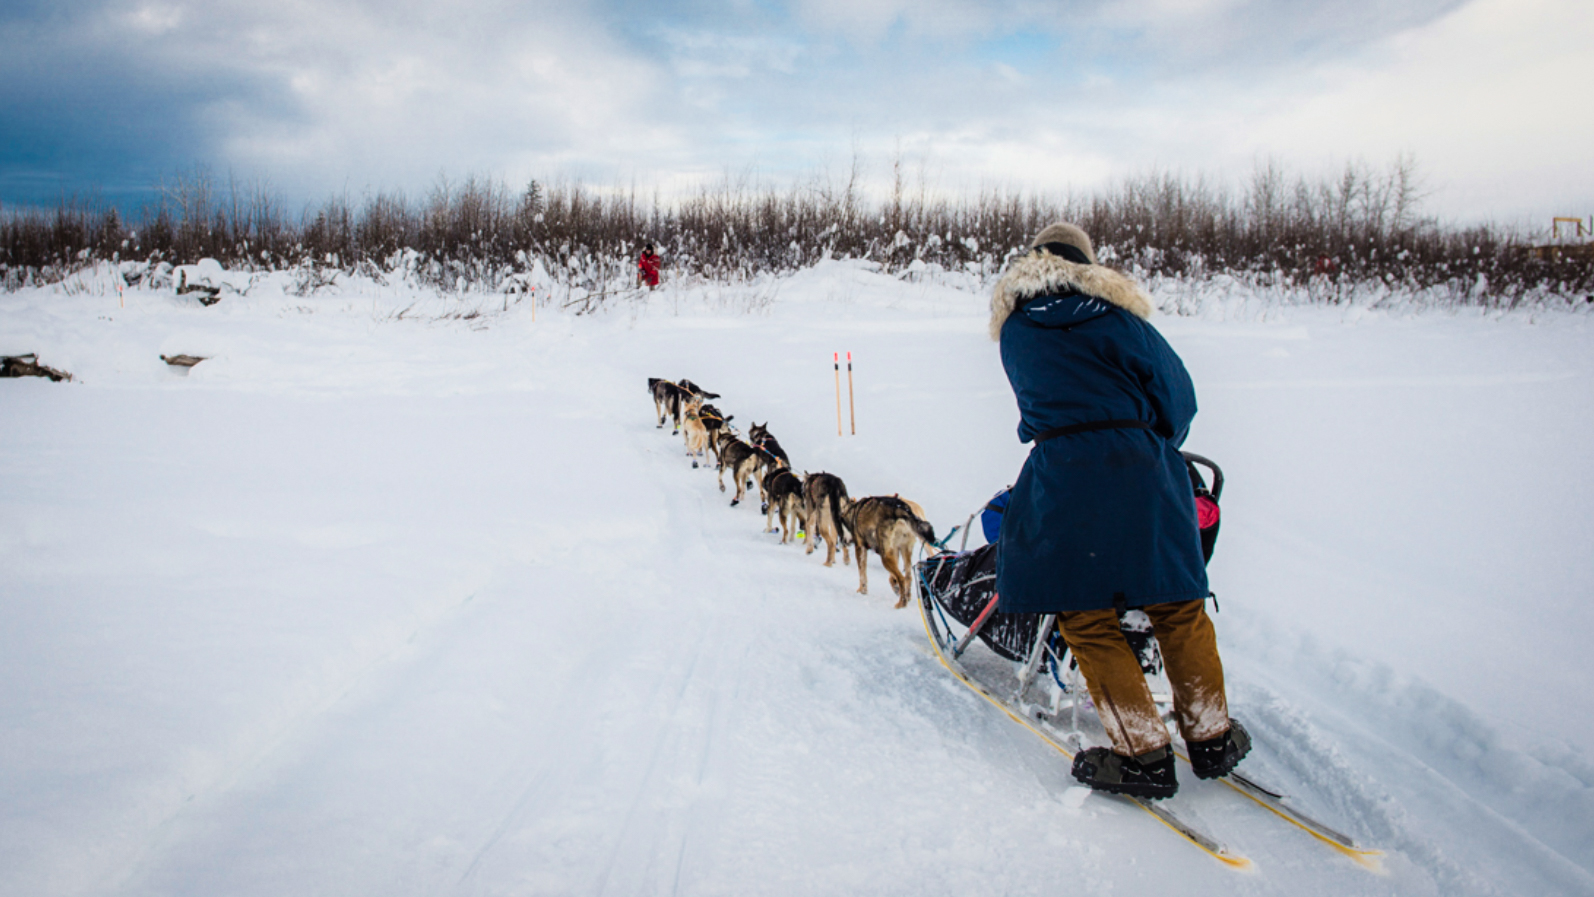 Following behind a dog musher and their team in Central, Alaska - Pat Kane